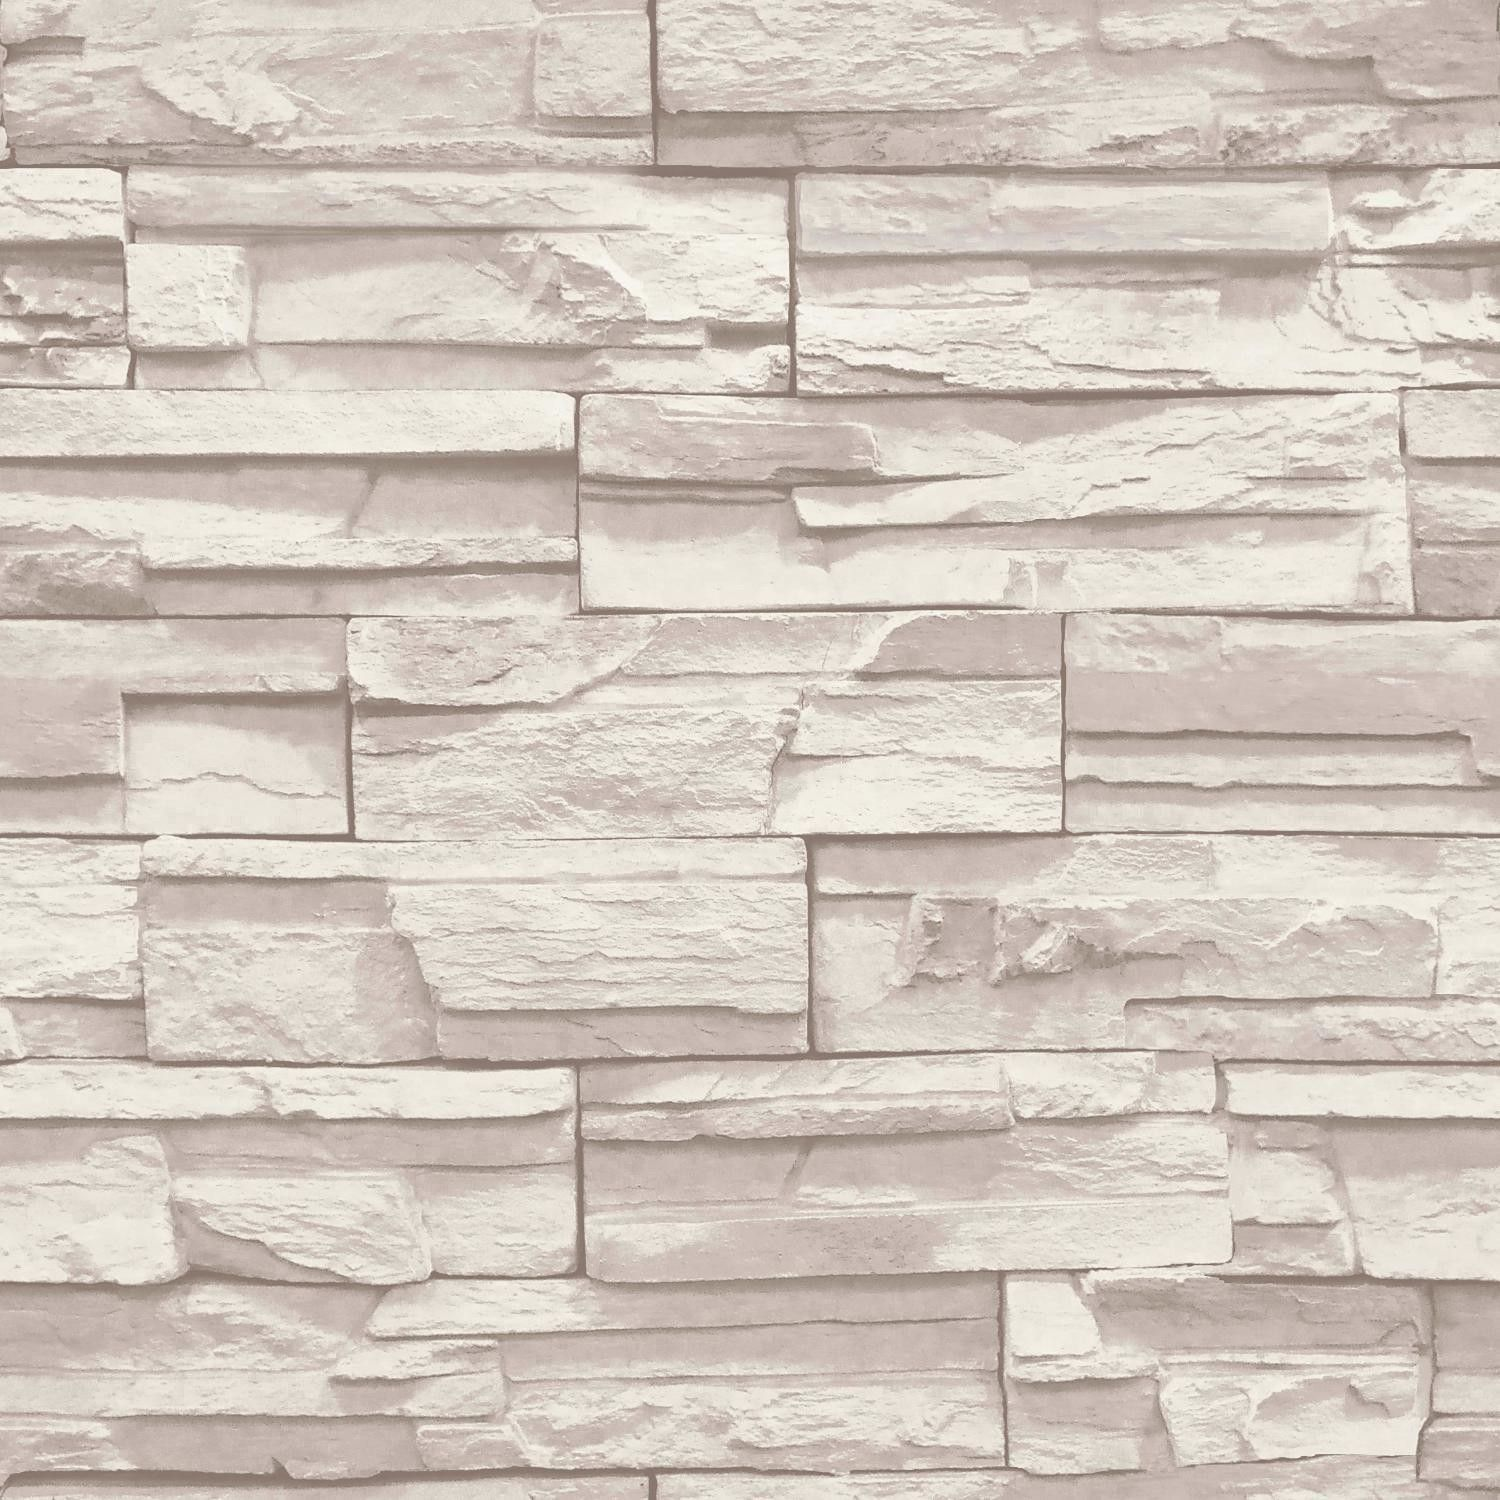 3d Effect Stone Brick Wall Textured Vinyl Wallpaper Self Adhesive Features Design Match Straight Packaged And Sold As A